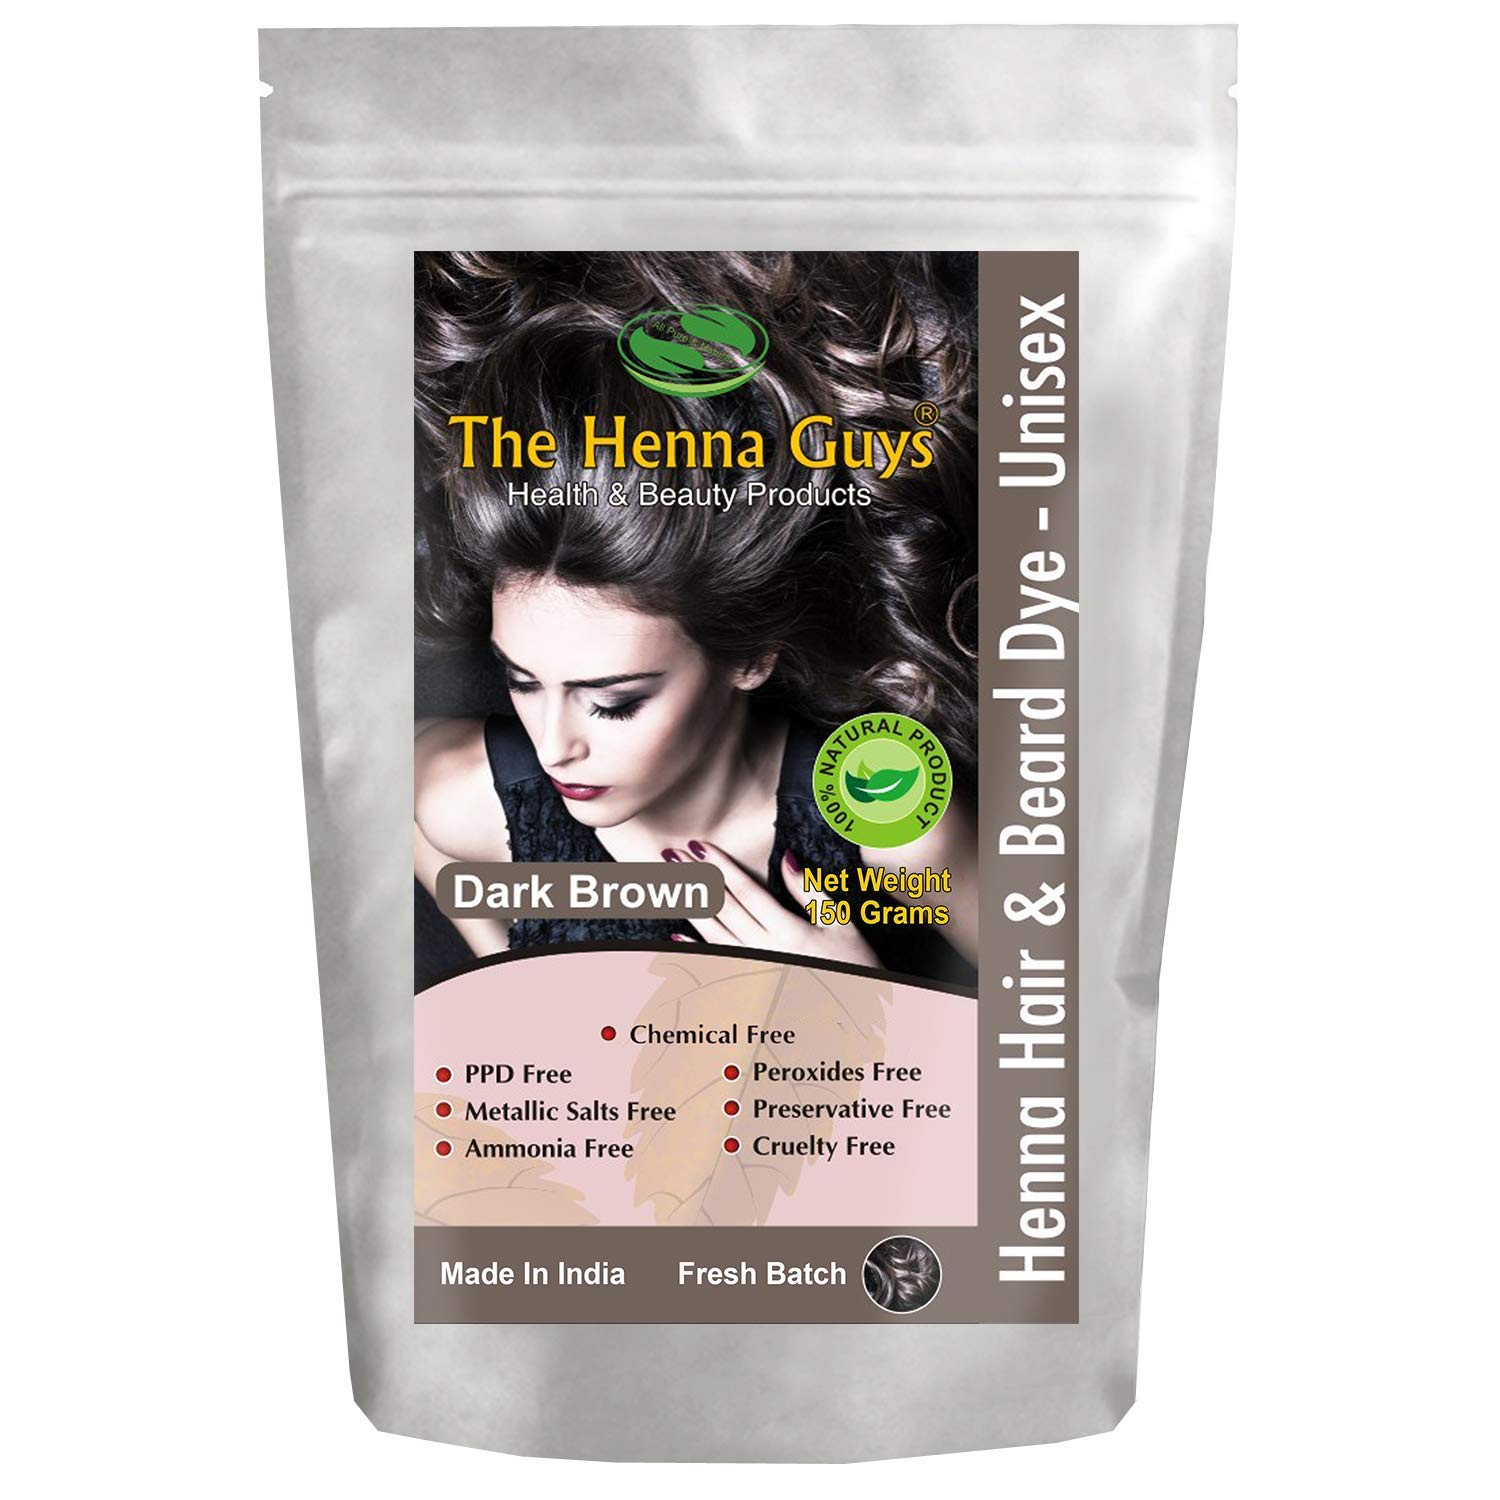 1 Pack of Dark Brown Henna Hair Color/Dye - 150 Grams - Best Henna for Hair, Natural Hair Color - Chemical Free Hair Color - The Henna Guys